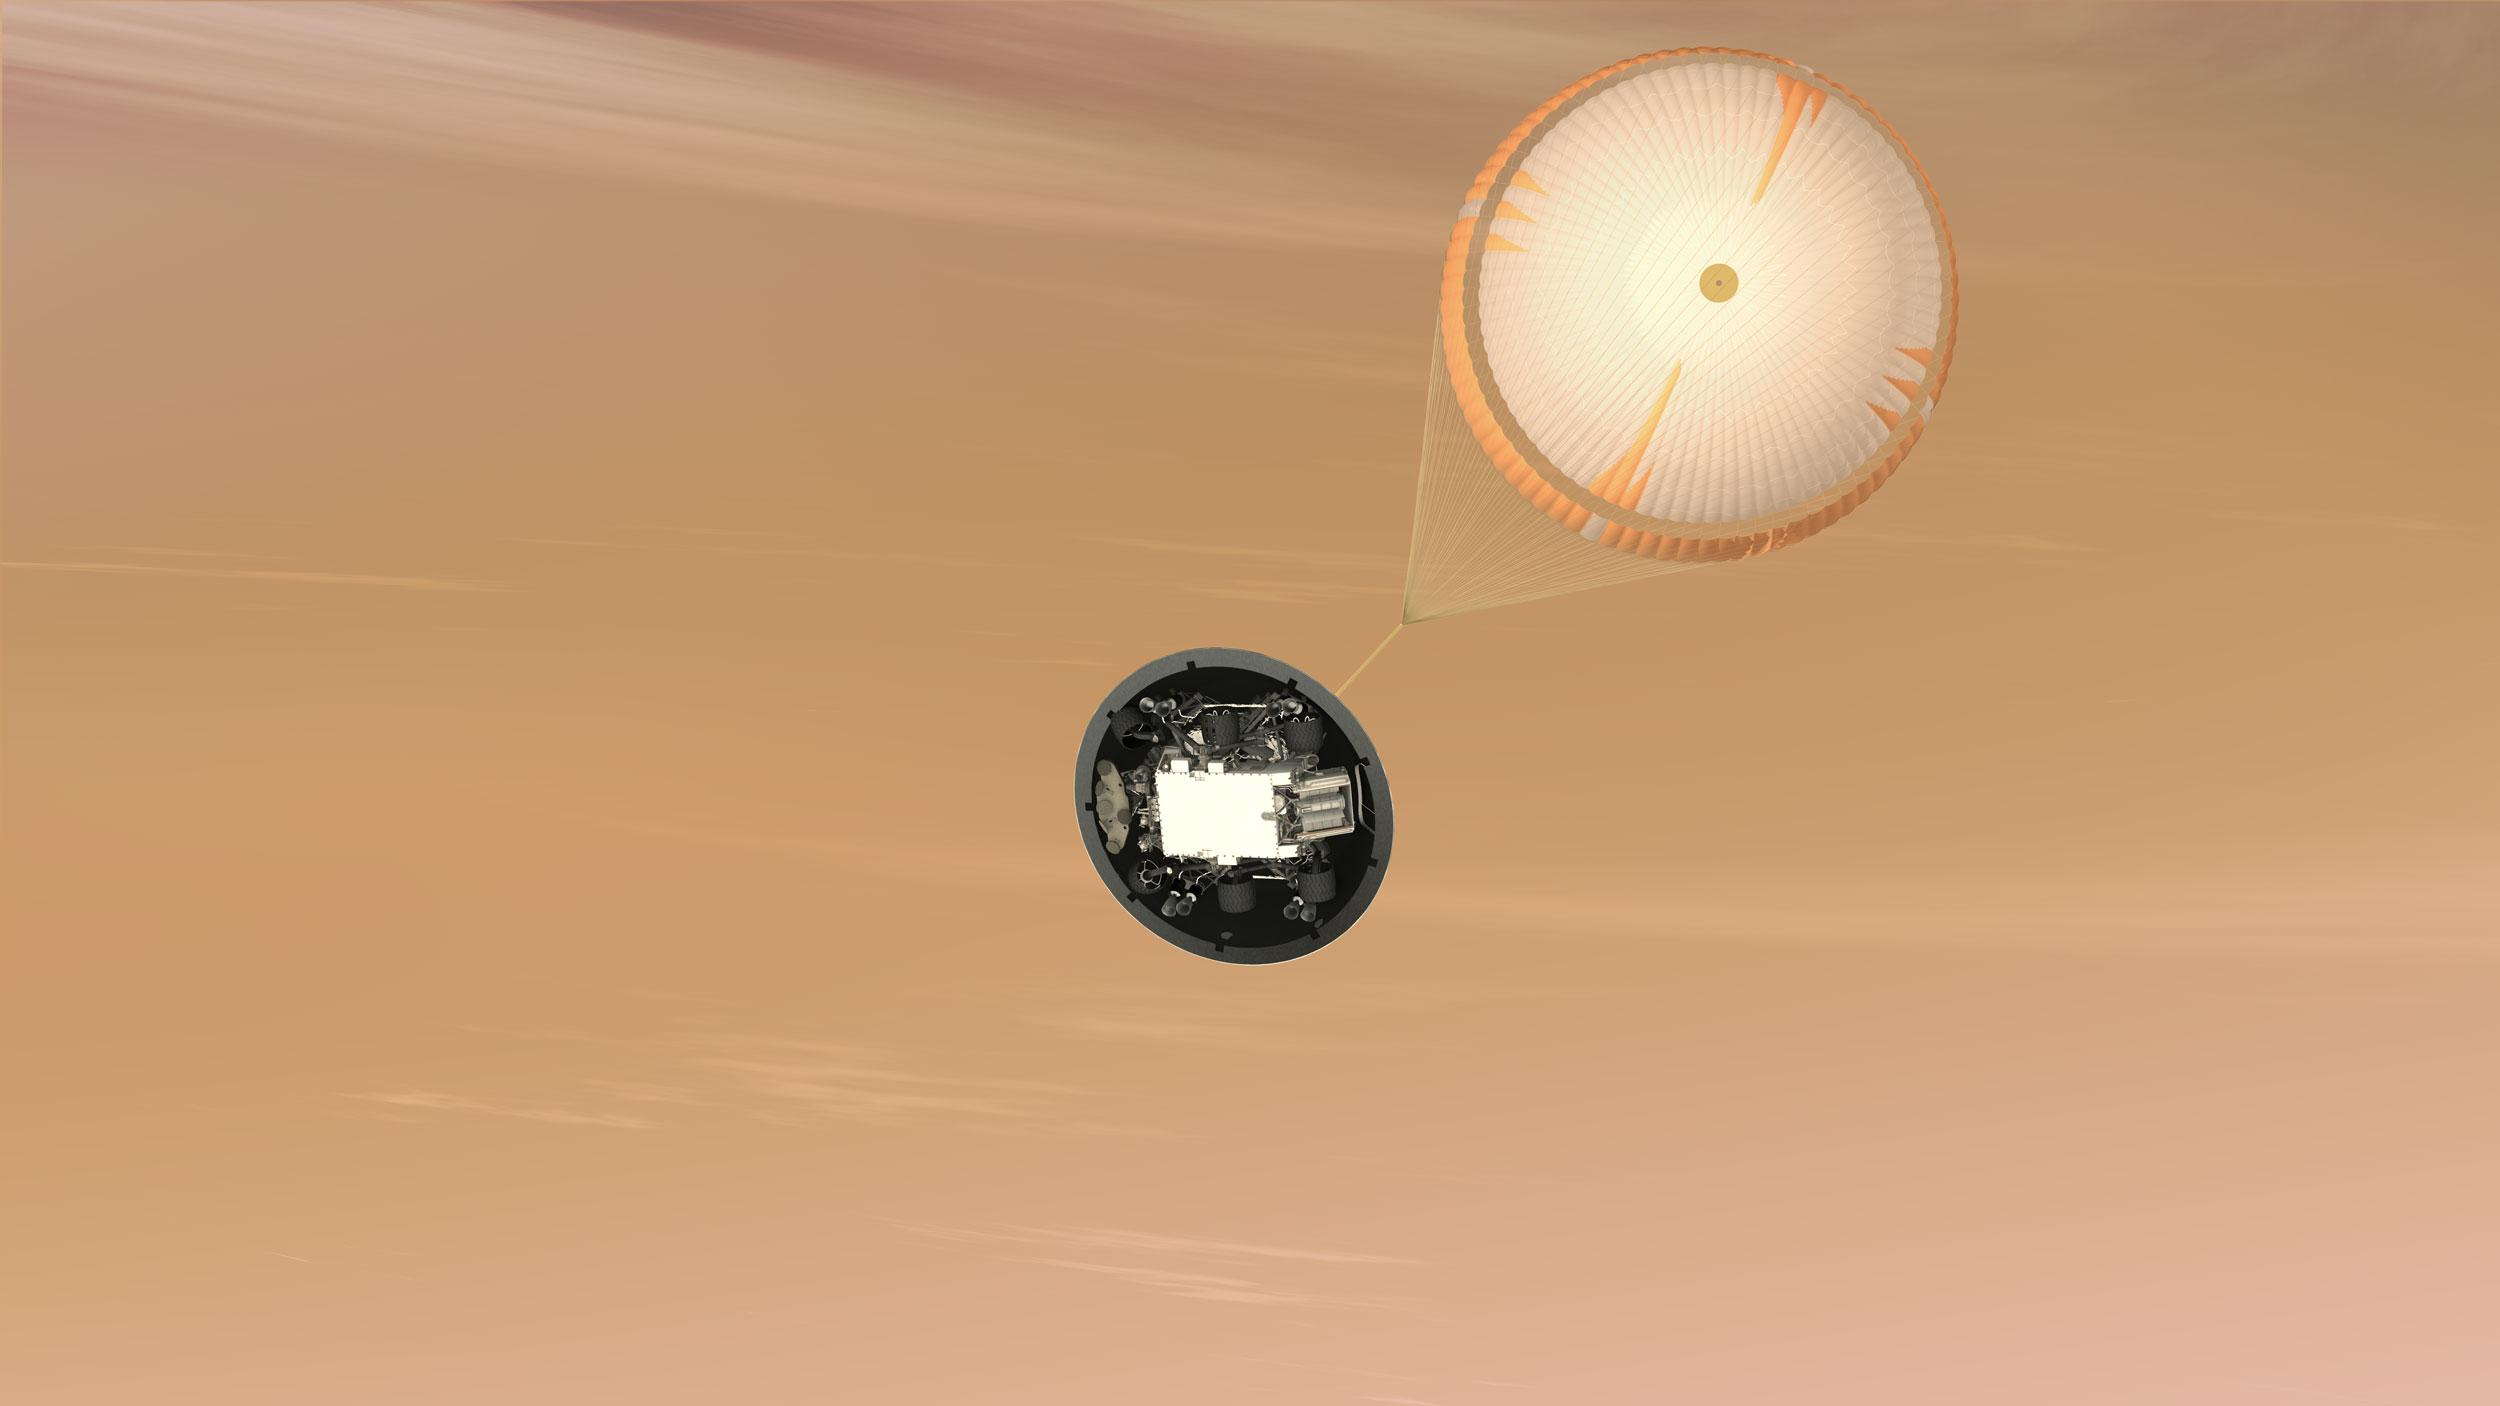 A parachute more than 50 feet across pops out, adding a bit more braking as the craft sinks into Mars's lower atmosphere.